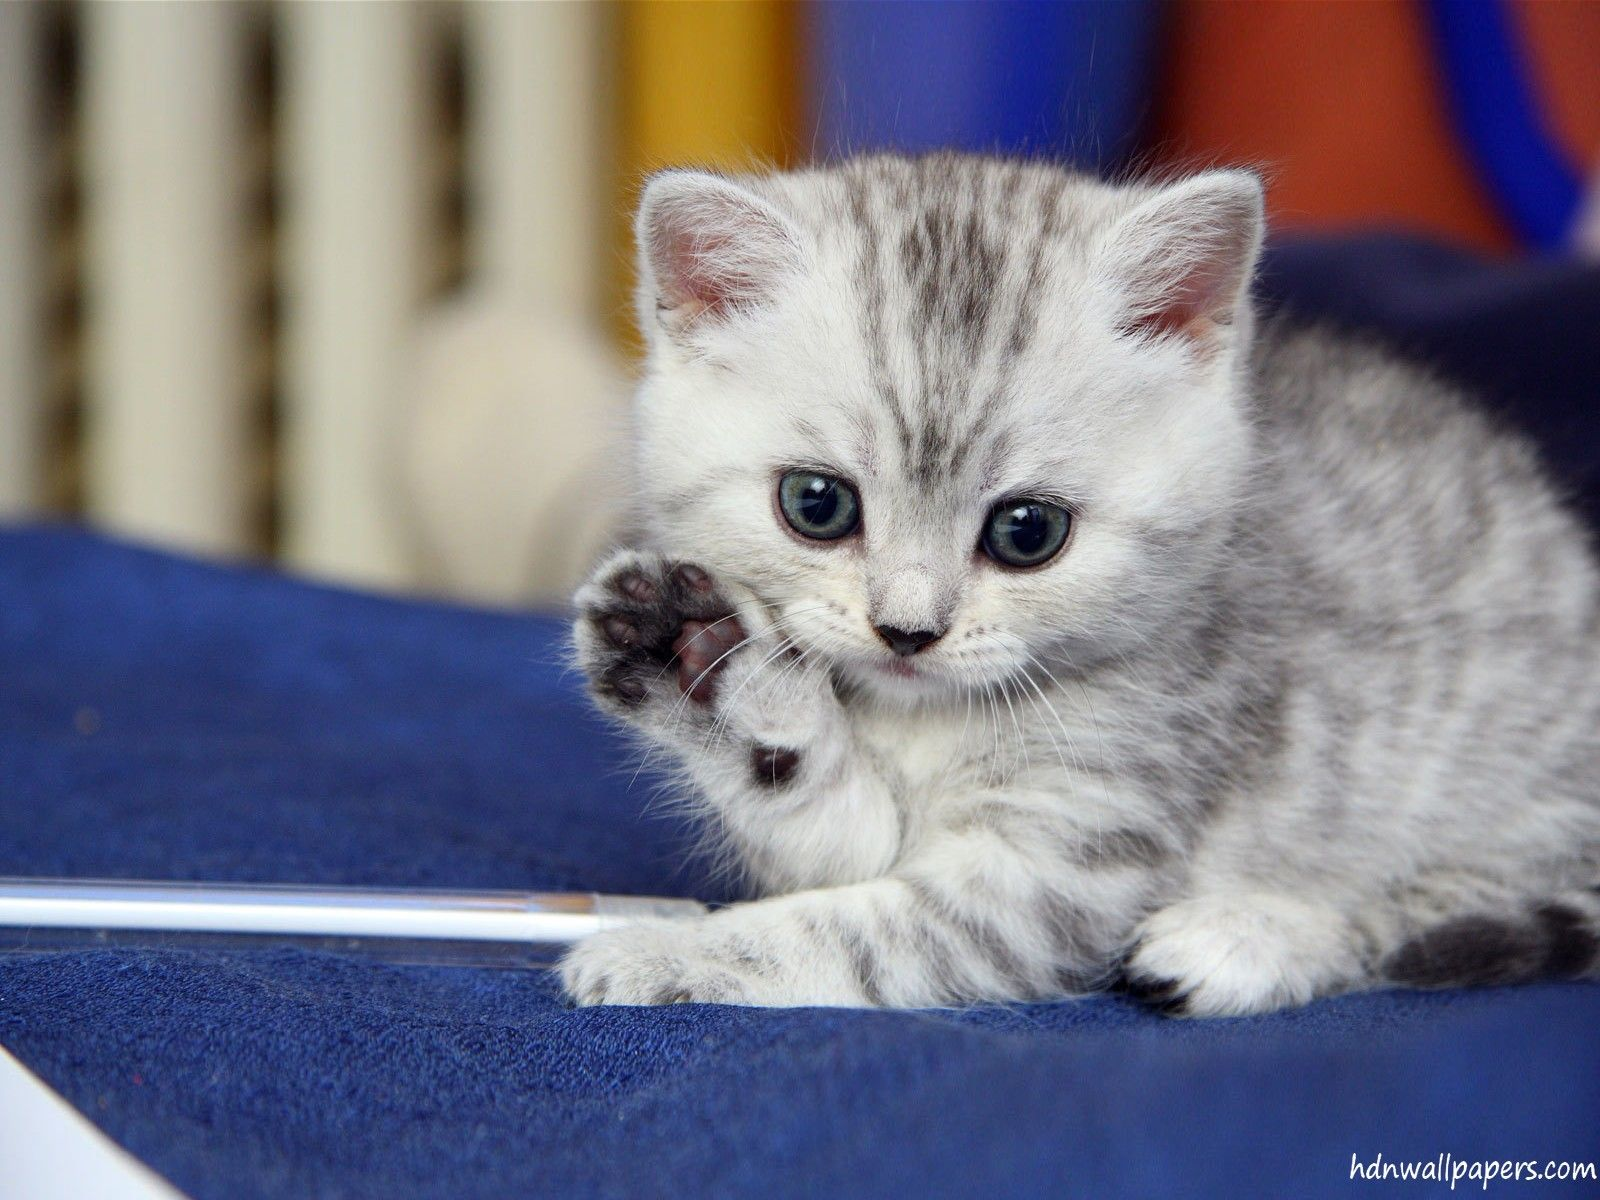 Cute Kitten Wallpapers Top Free Cute Kitten Backgrounds